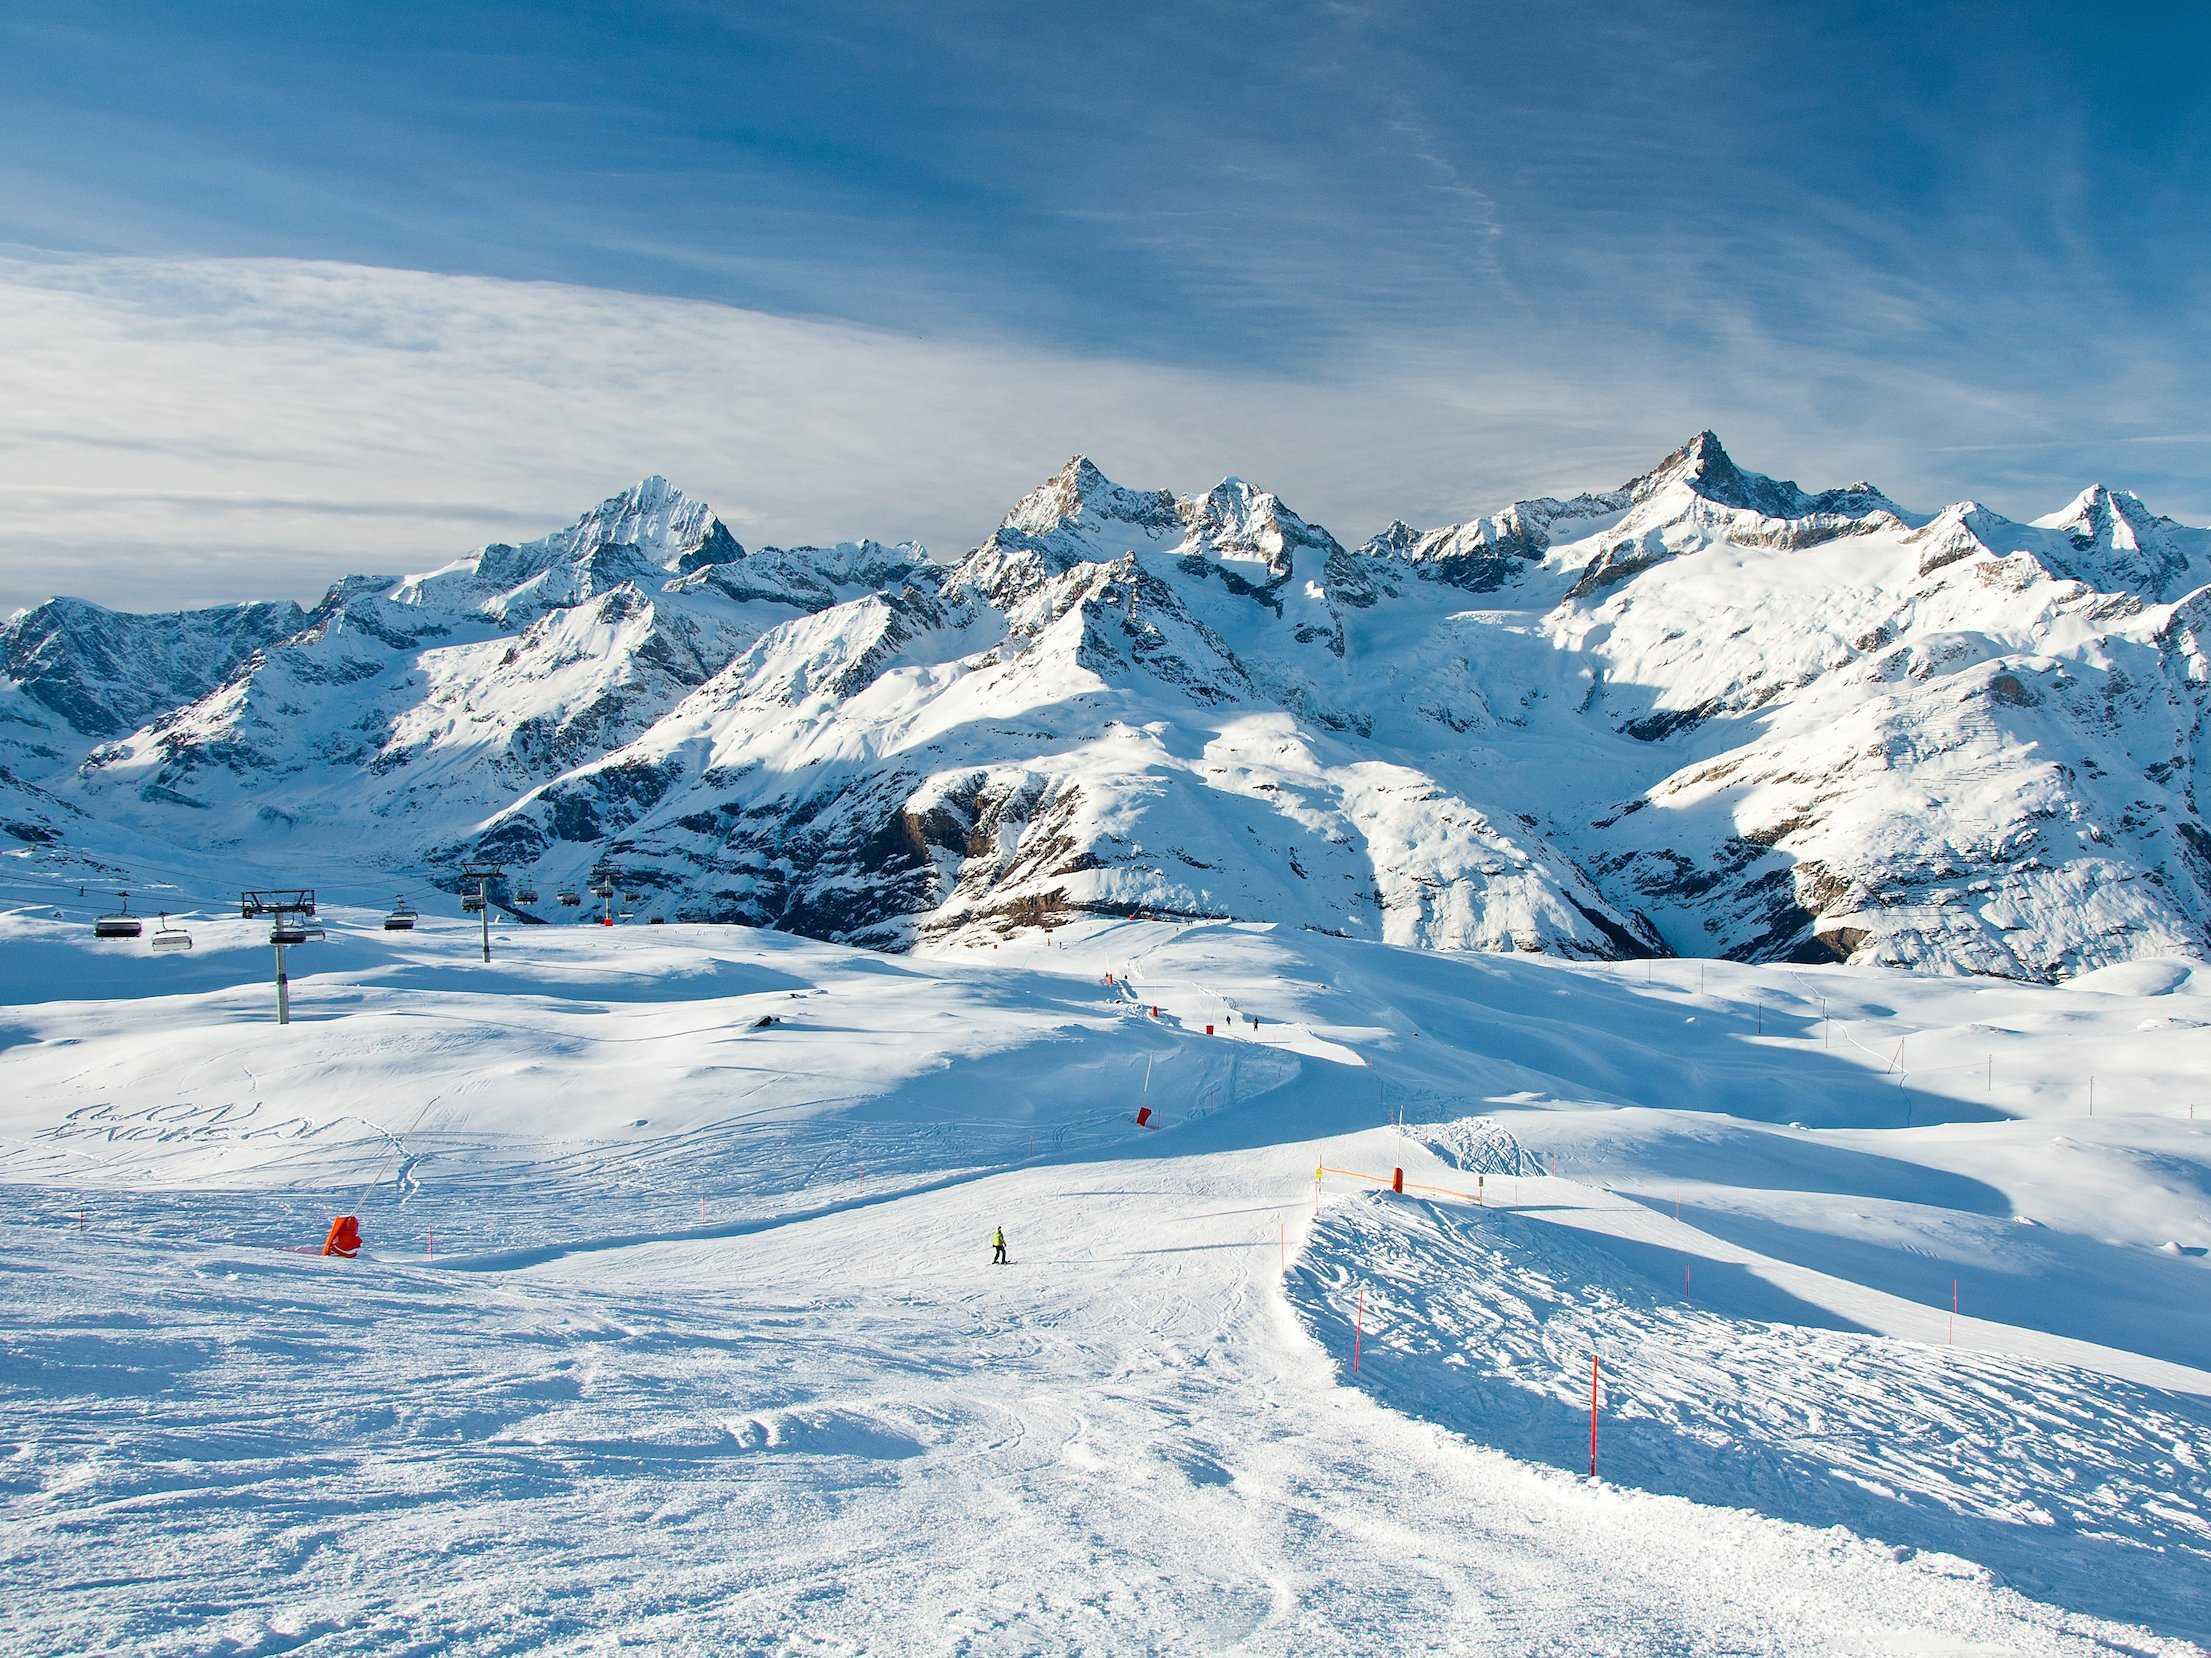 Ski the majestic mountains of the Swiss Alps.